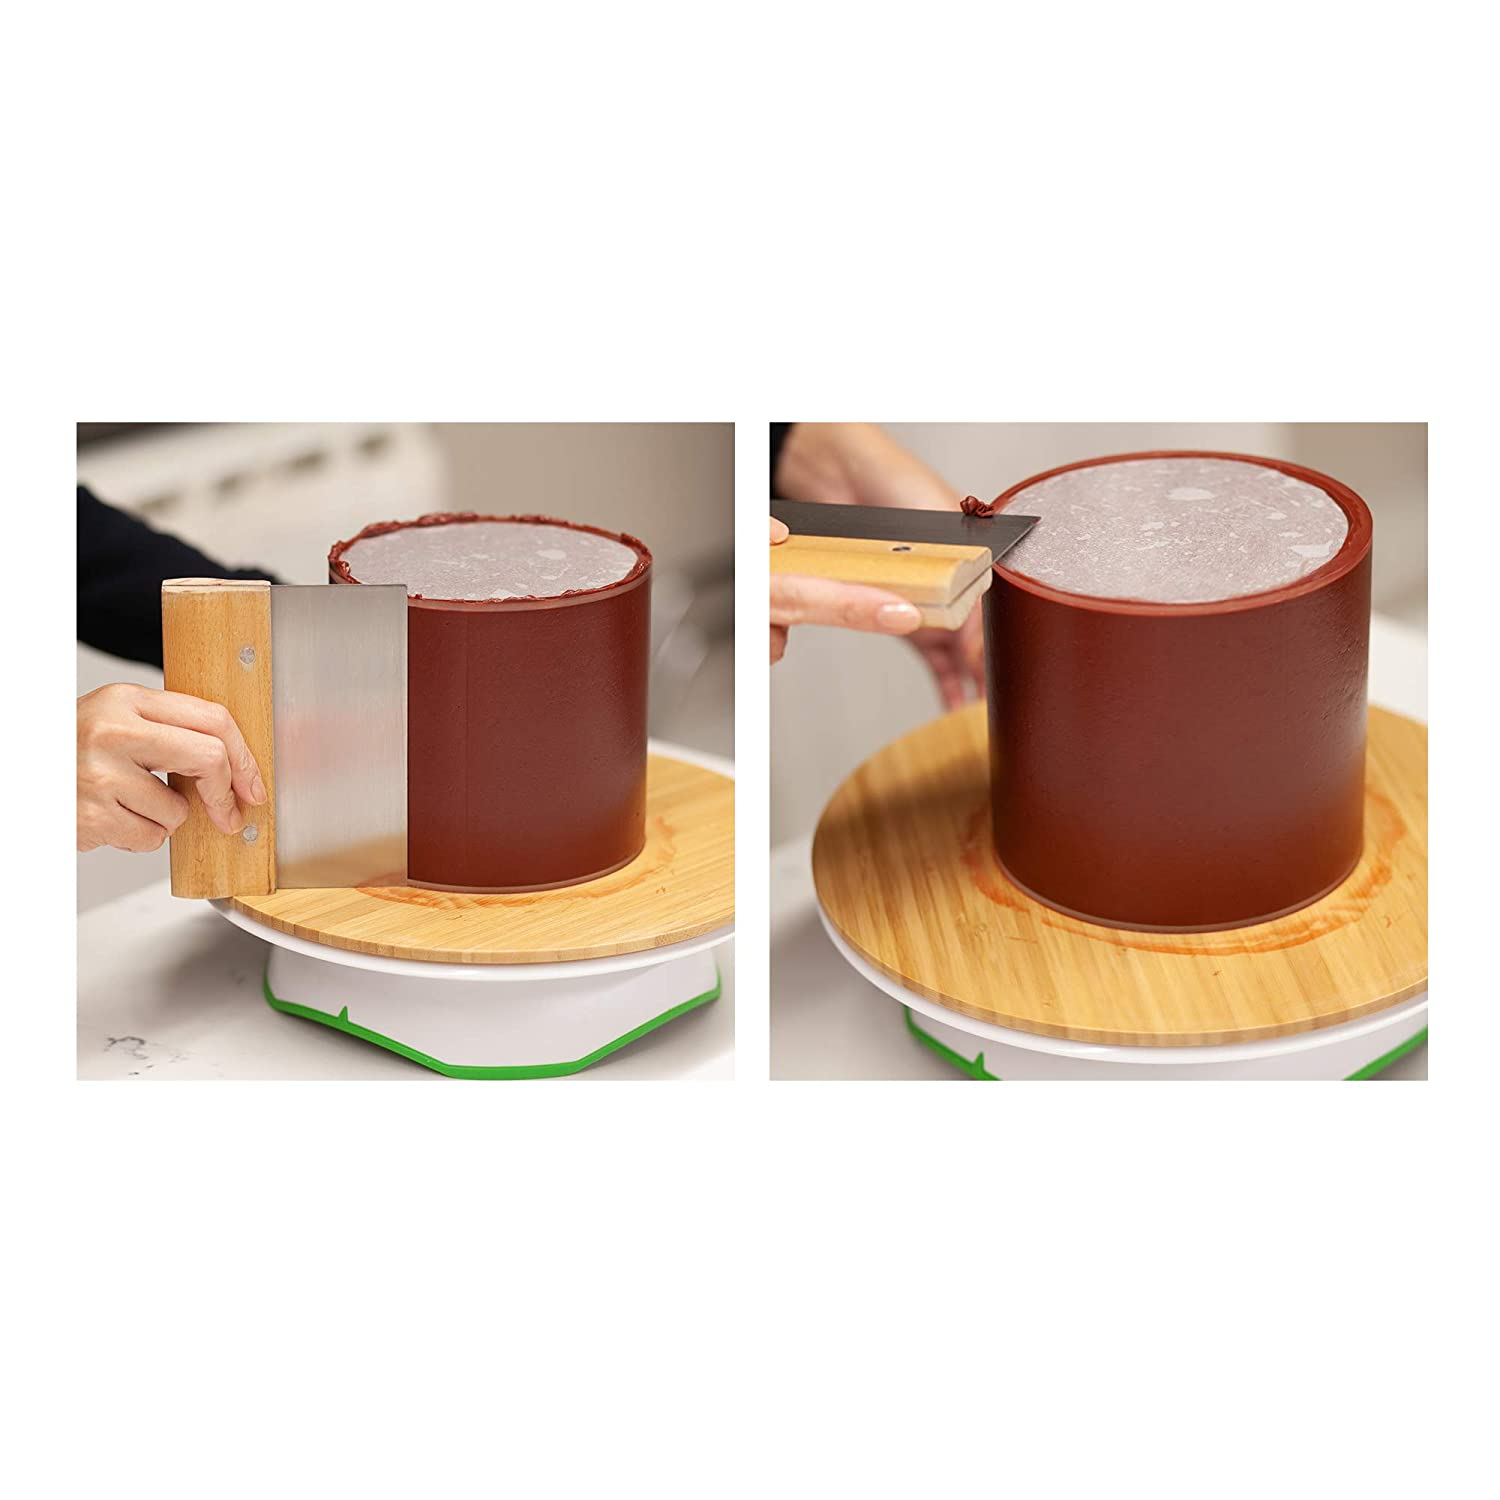 Great for Serving Bake Goods and Art Craft Project 6 Buttercream Acrylic Round Cake Disks Set of 2 0.18 or 3//16 thick